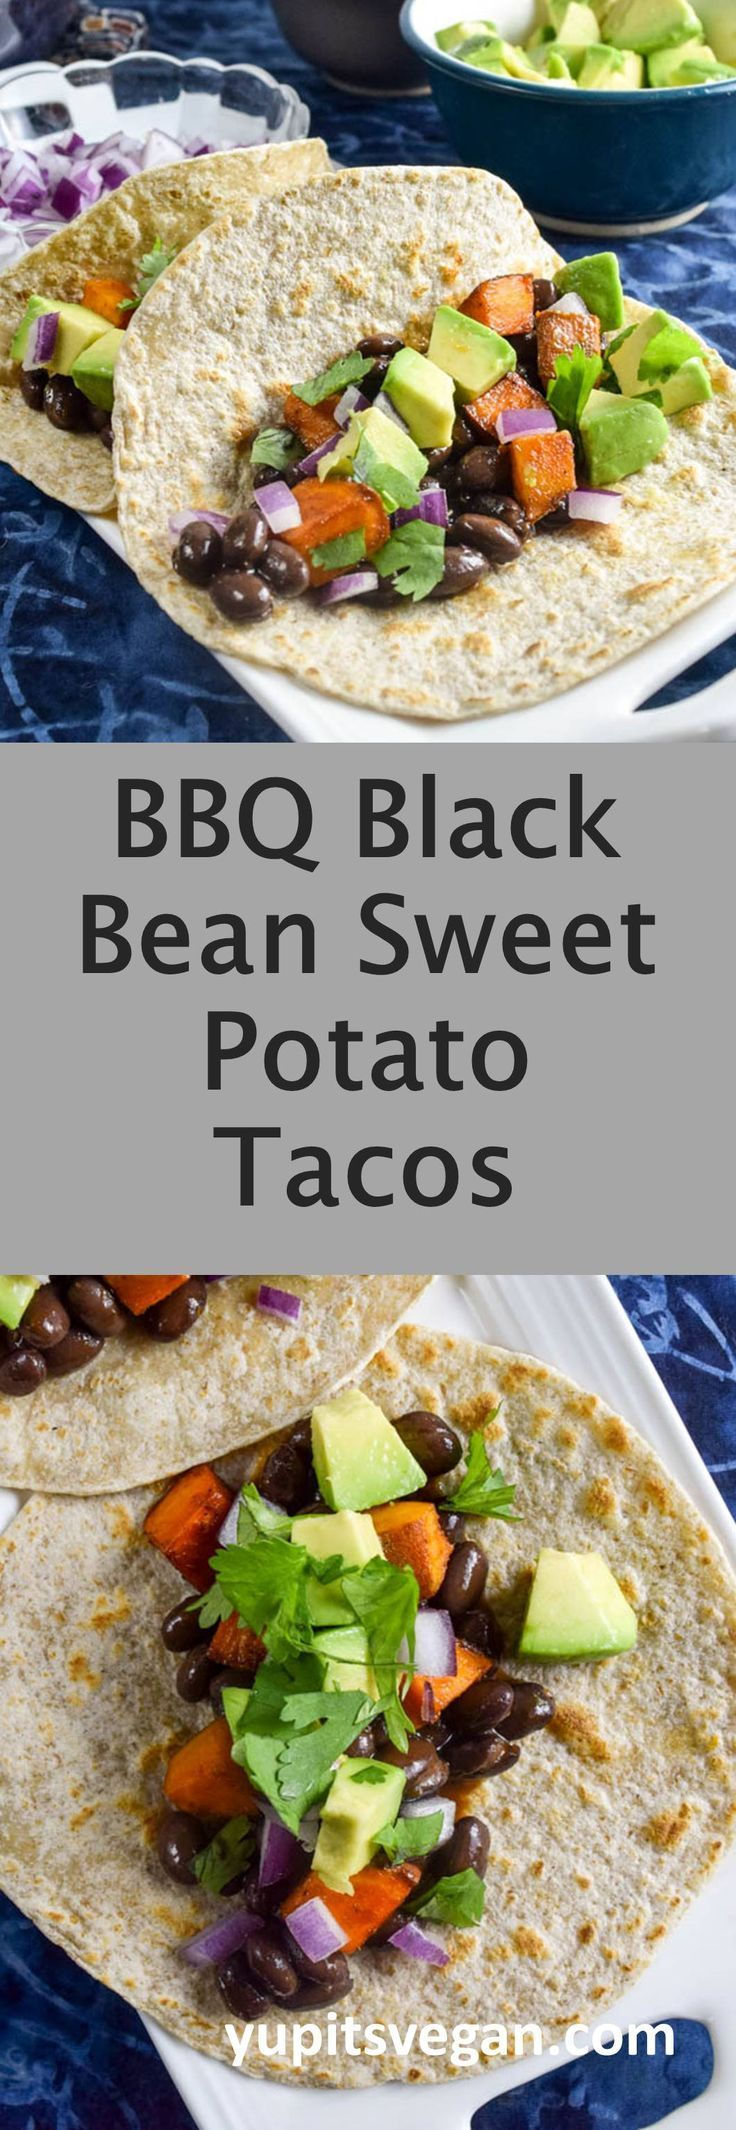 BBQ Sweet Potato and Black Bean Tacos | Yup, it's Vegan. Hearty tacos infused with BBQ flavor and full of fresh toppings. (vegan+gf)